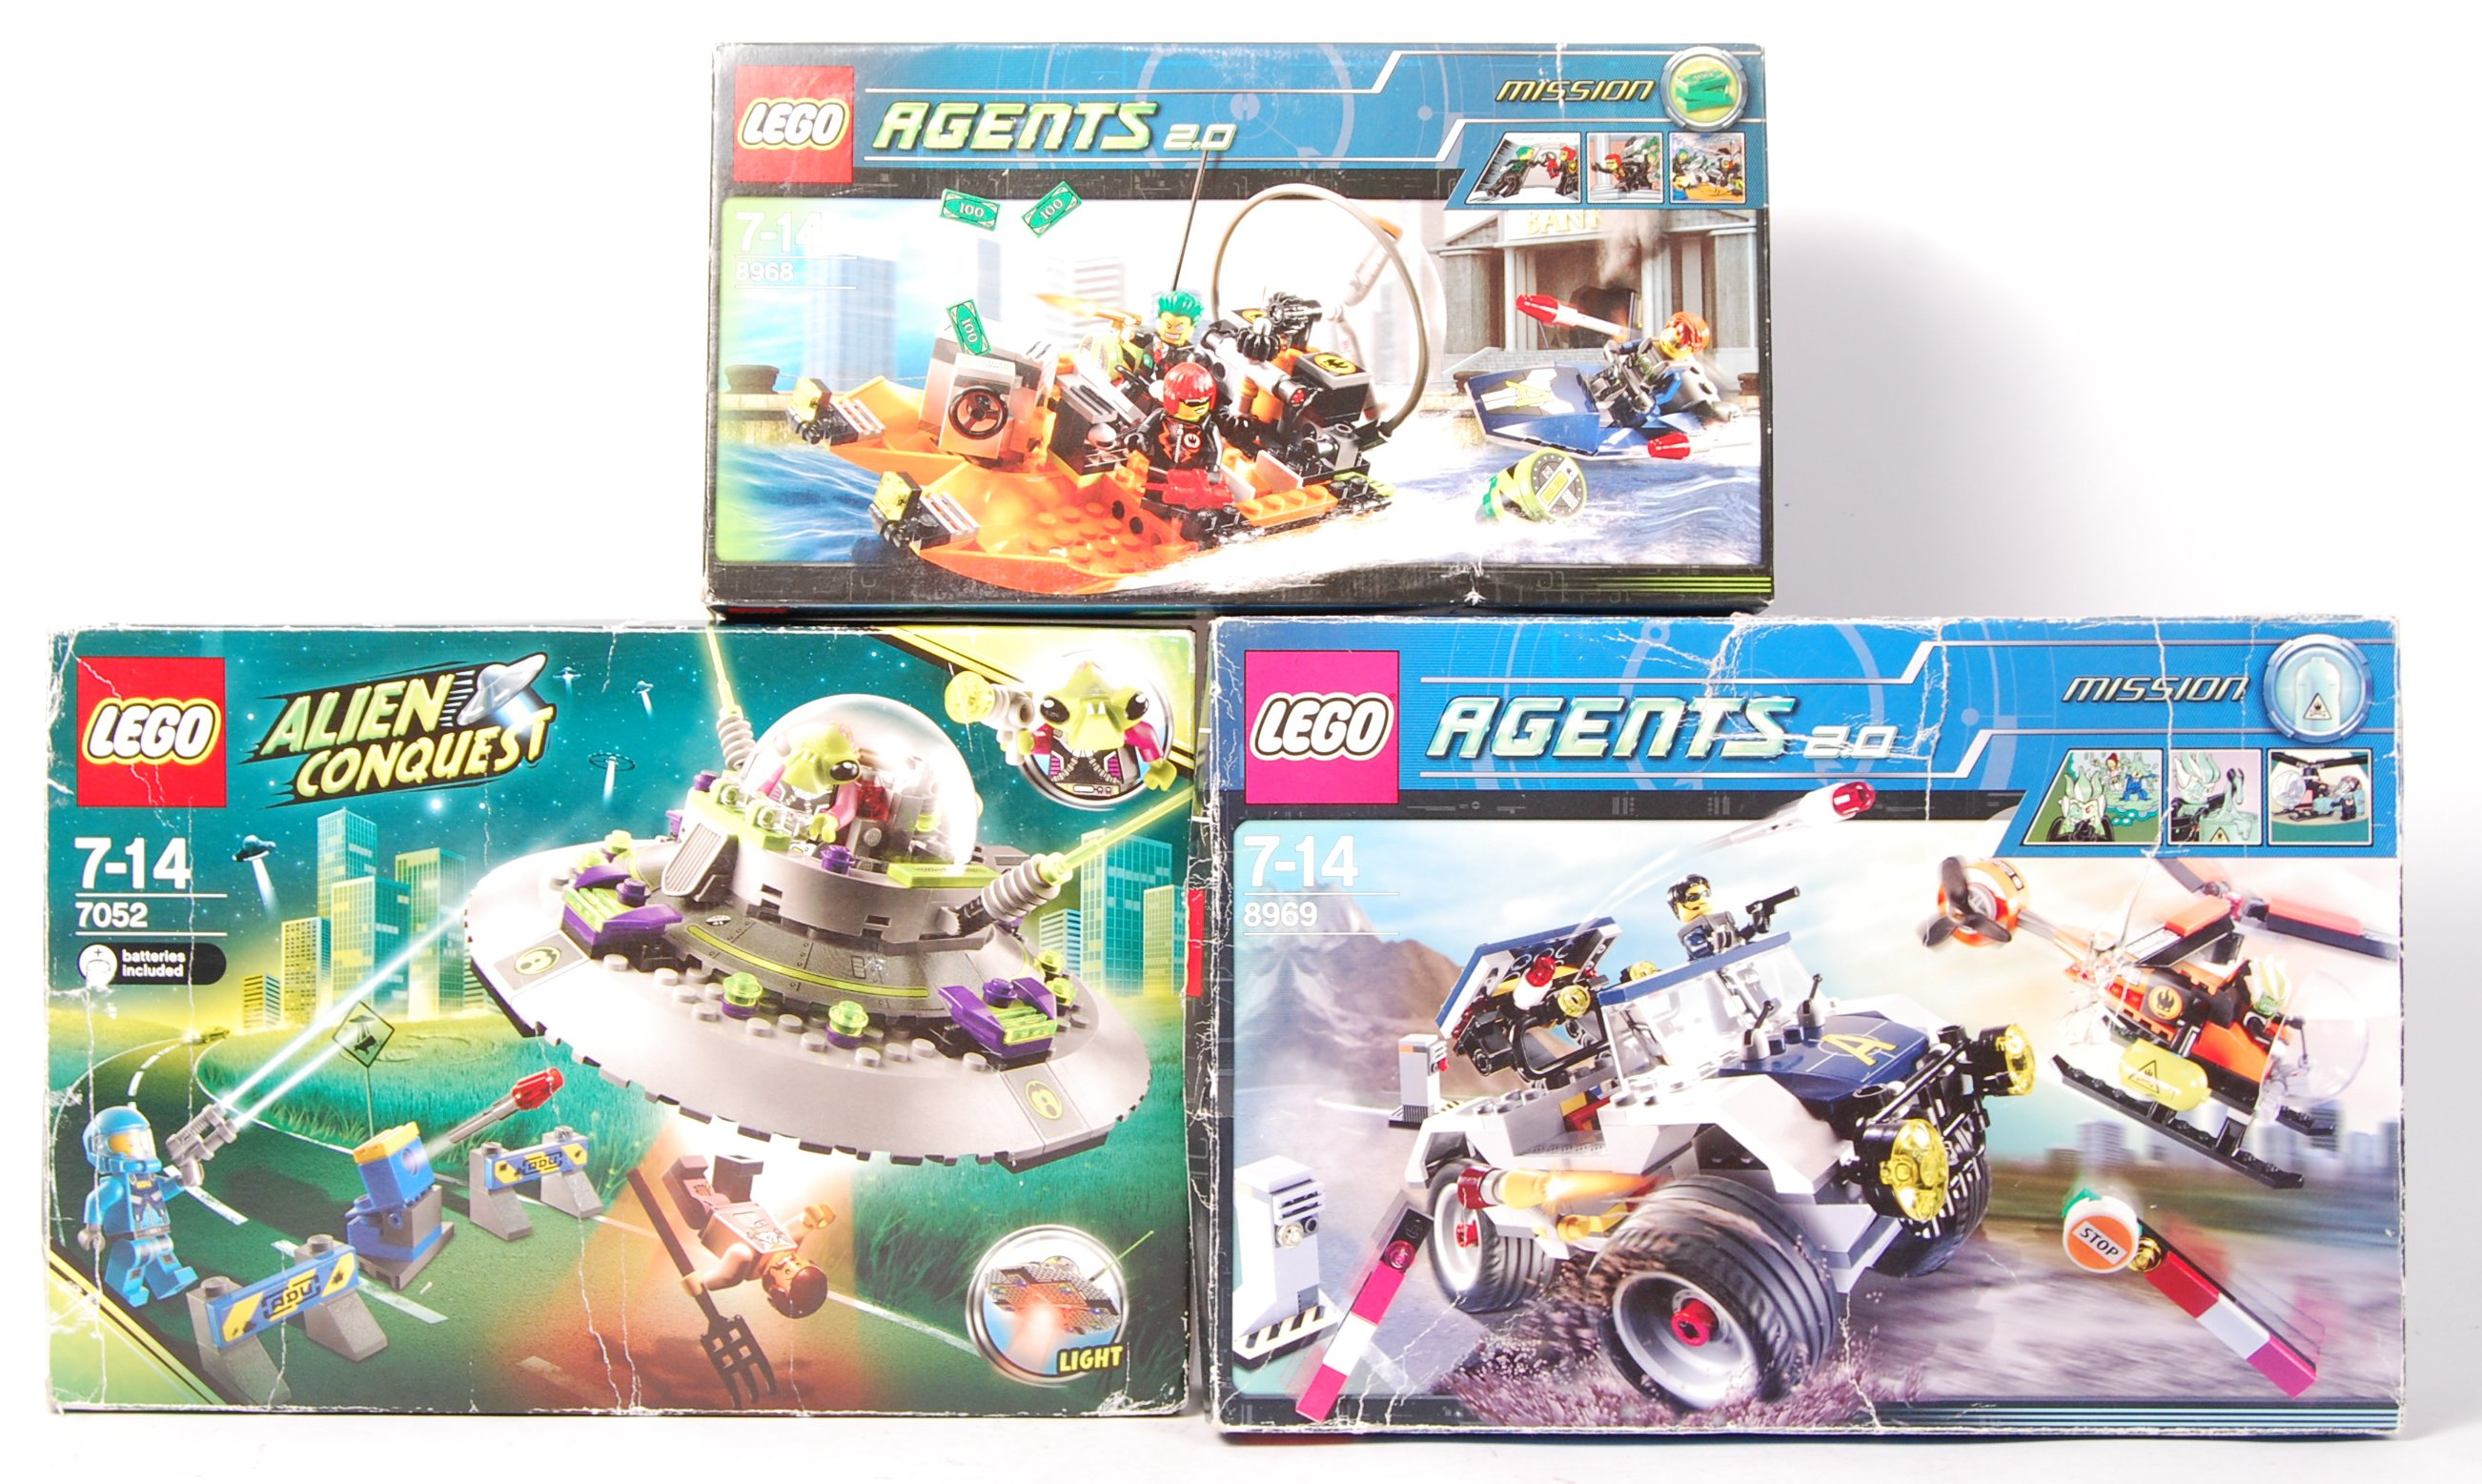 ASSORTED LEGO ' AGENTS ' AND ' ALIEN CONQUEST ' BO